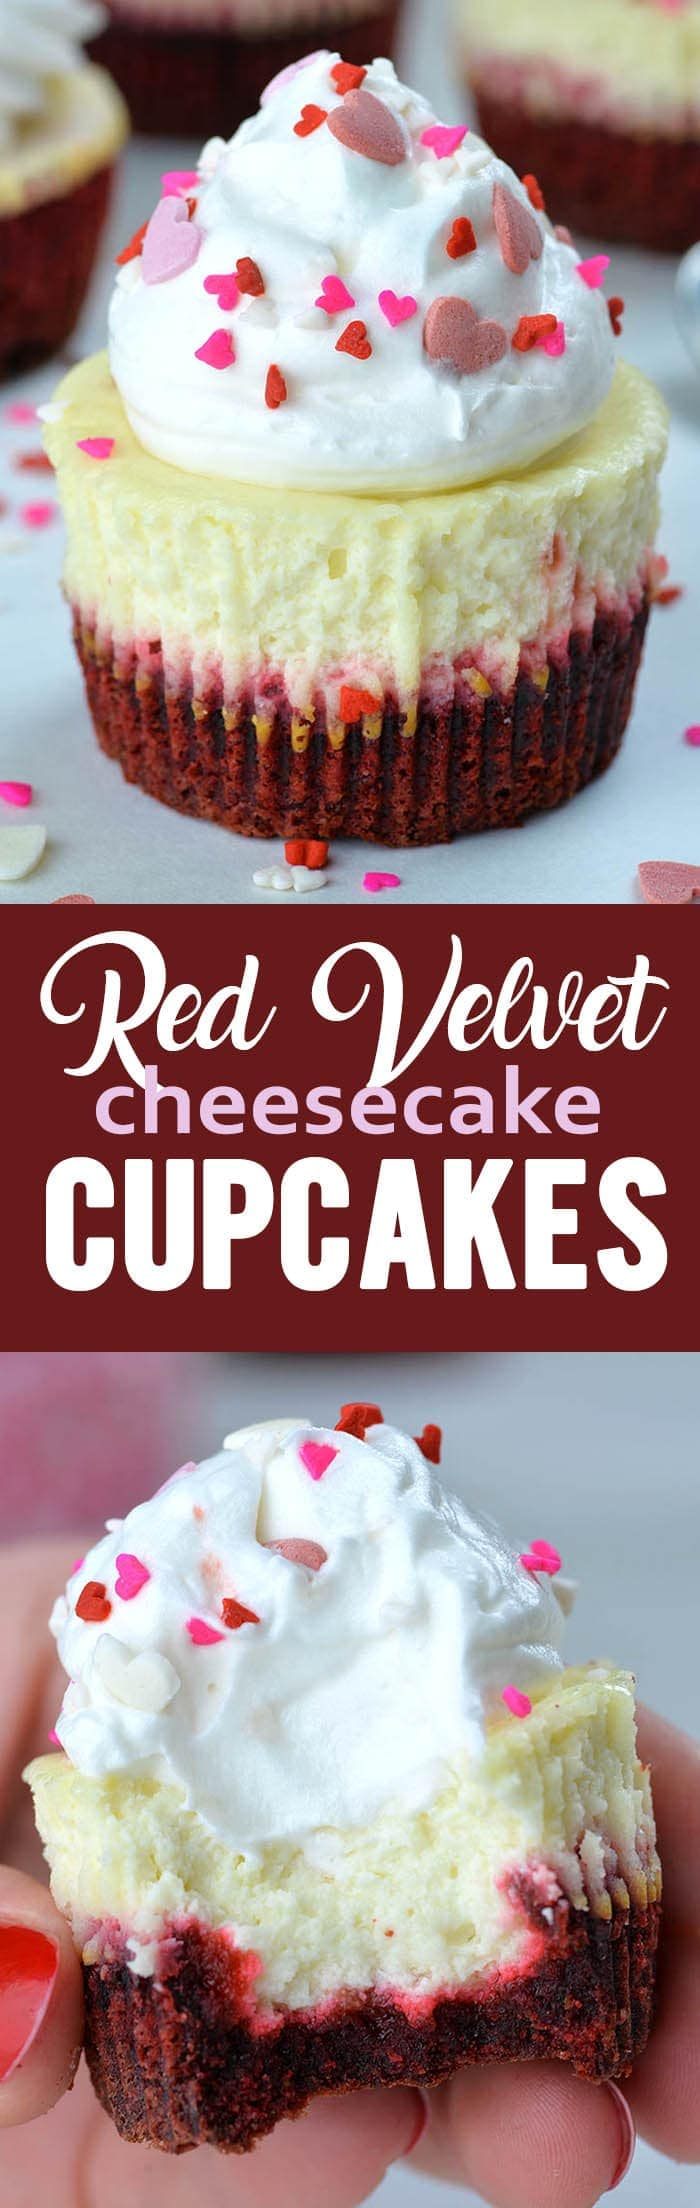 Red Velvet Cheesecake Cupcakes are perfect Valentine's Day treat - combo of smooth cheesecake on top of red velvet crust packed in individual portion.